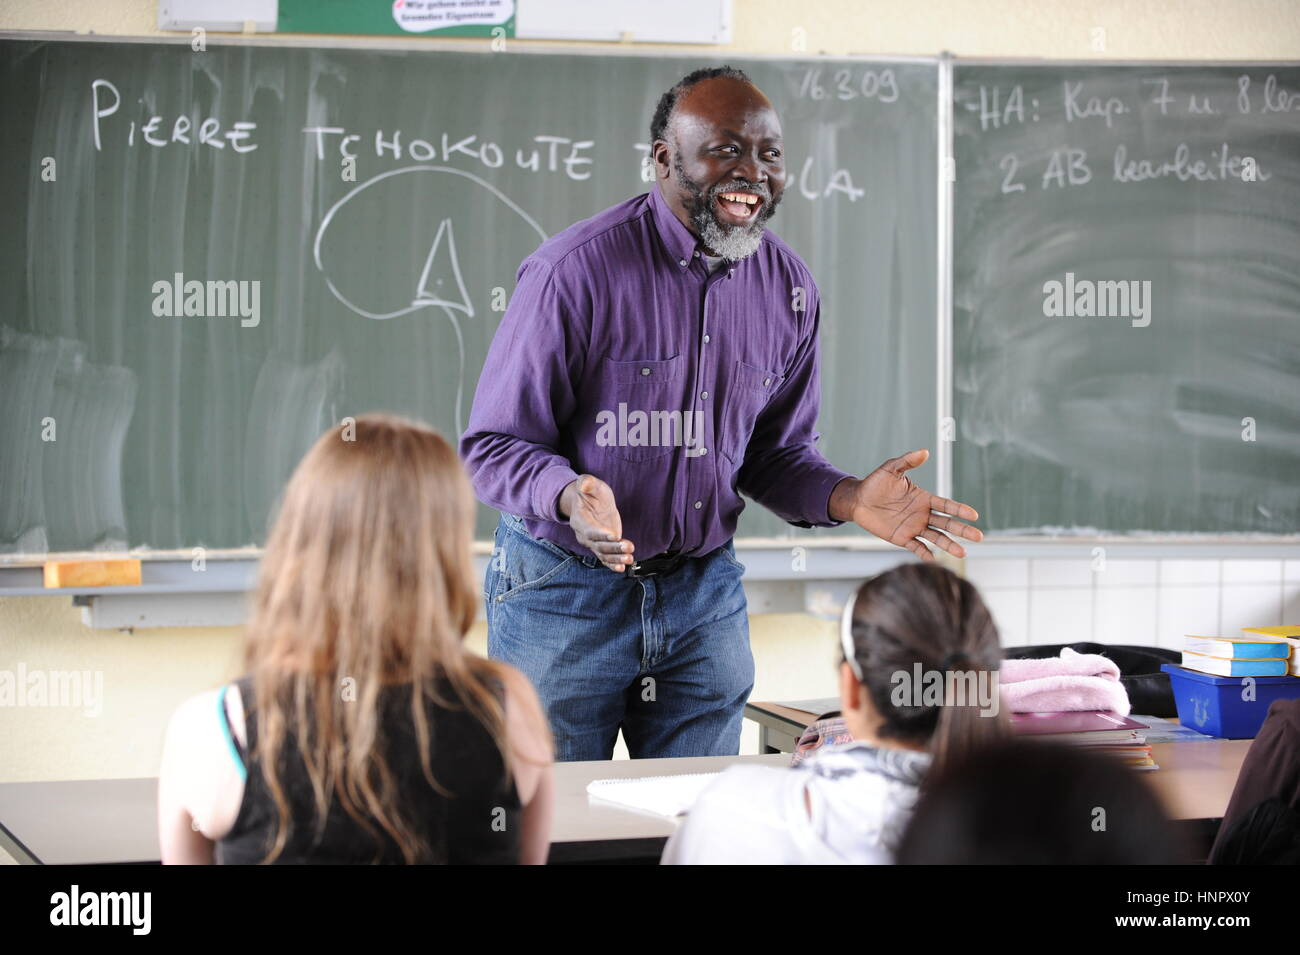 Munich, Germany - August 9, 2013 - Teacher immigrated from africa helping foreign pupils getting integrated in Germany - Stock Image